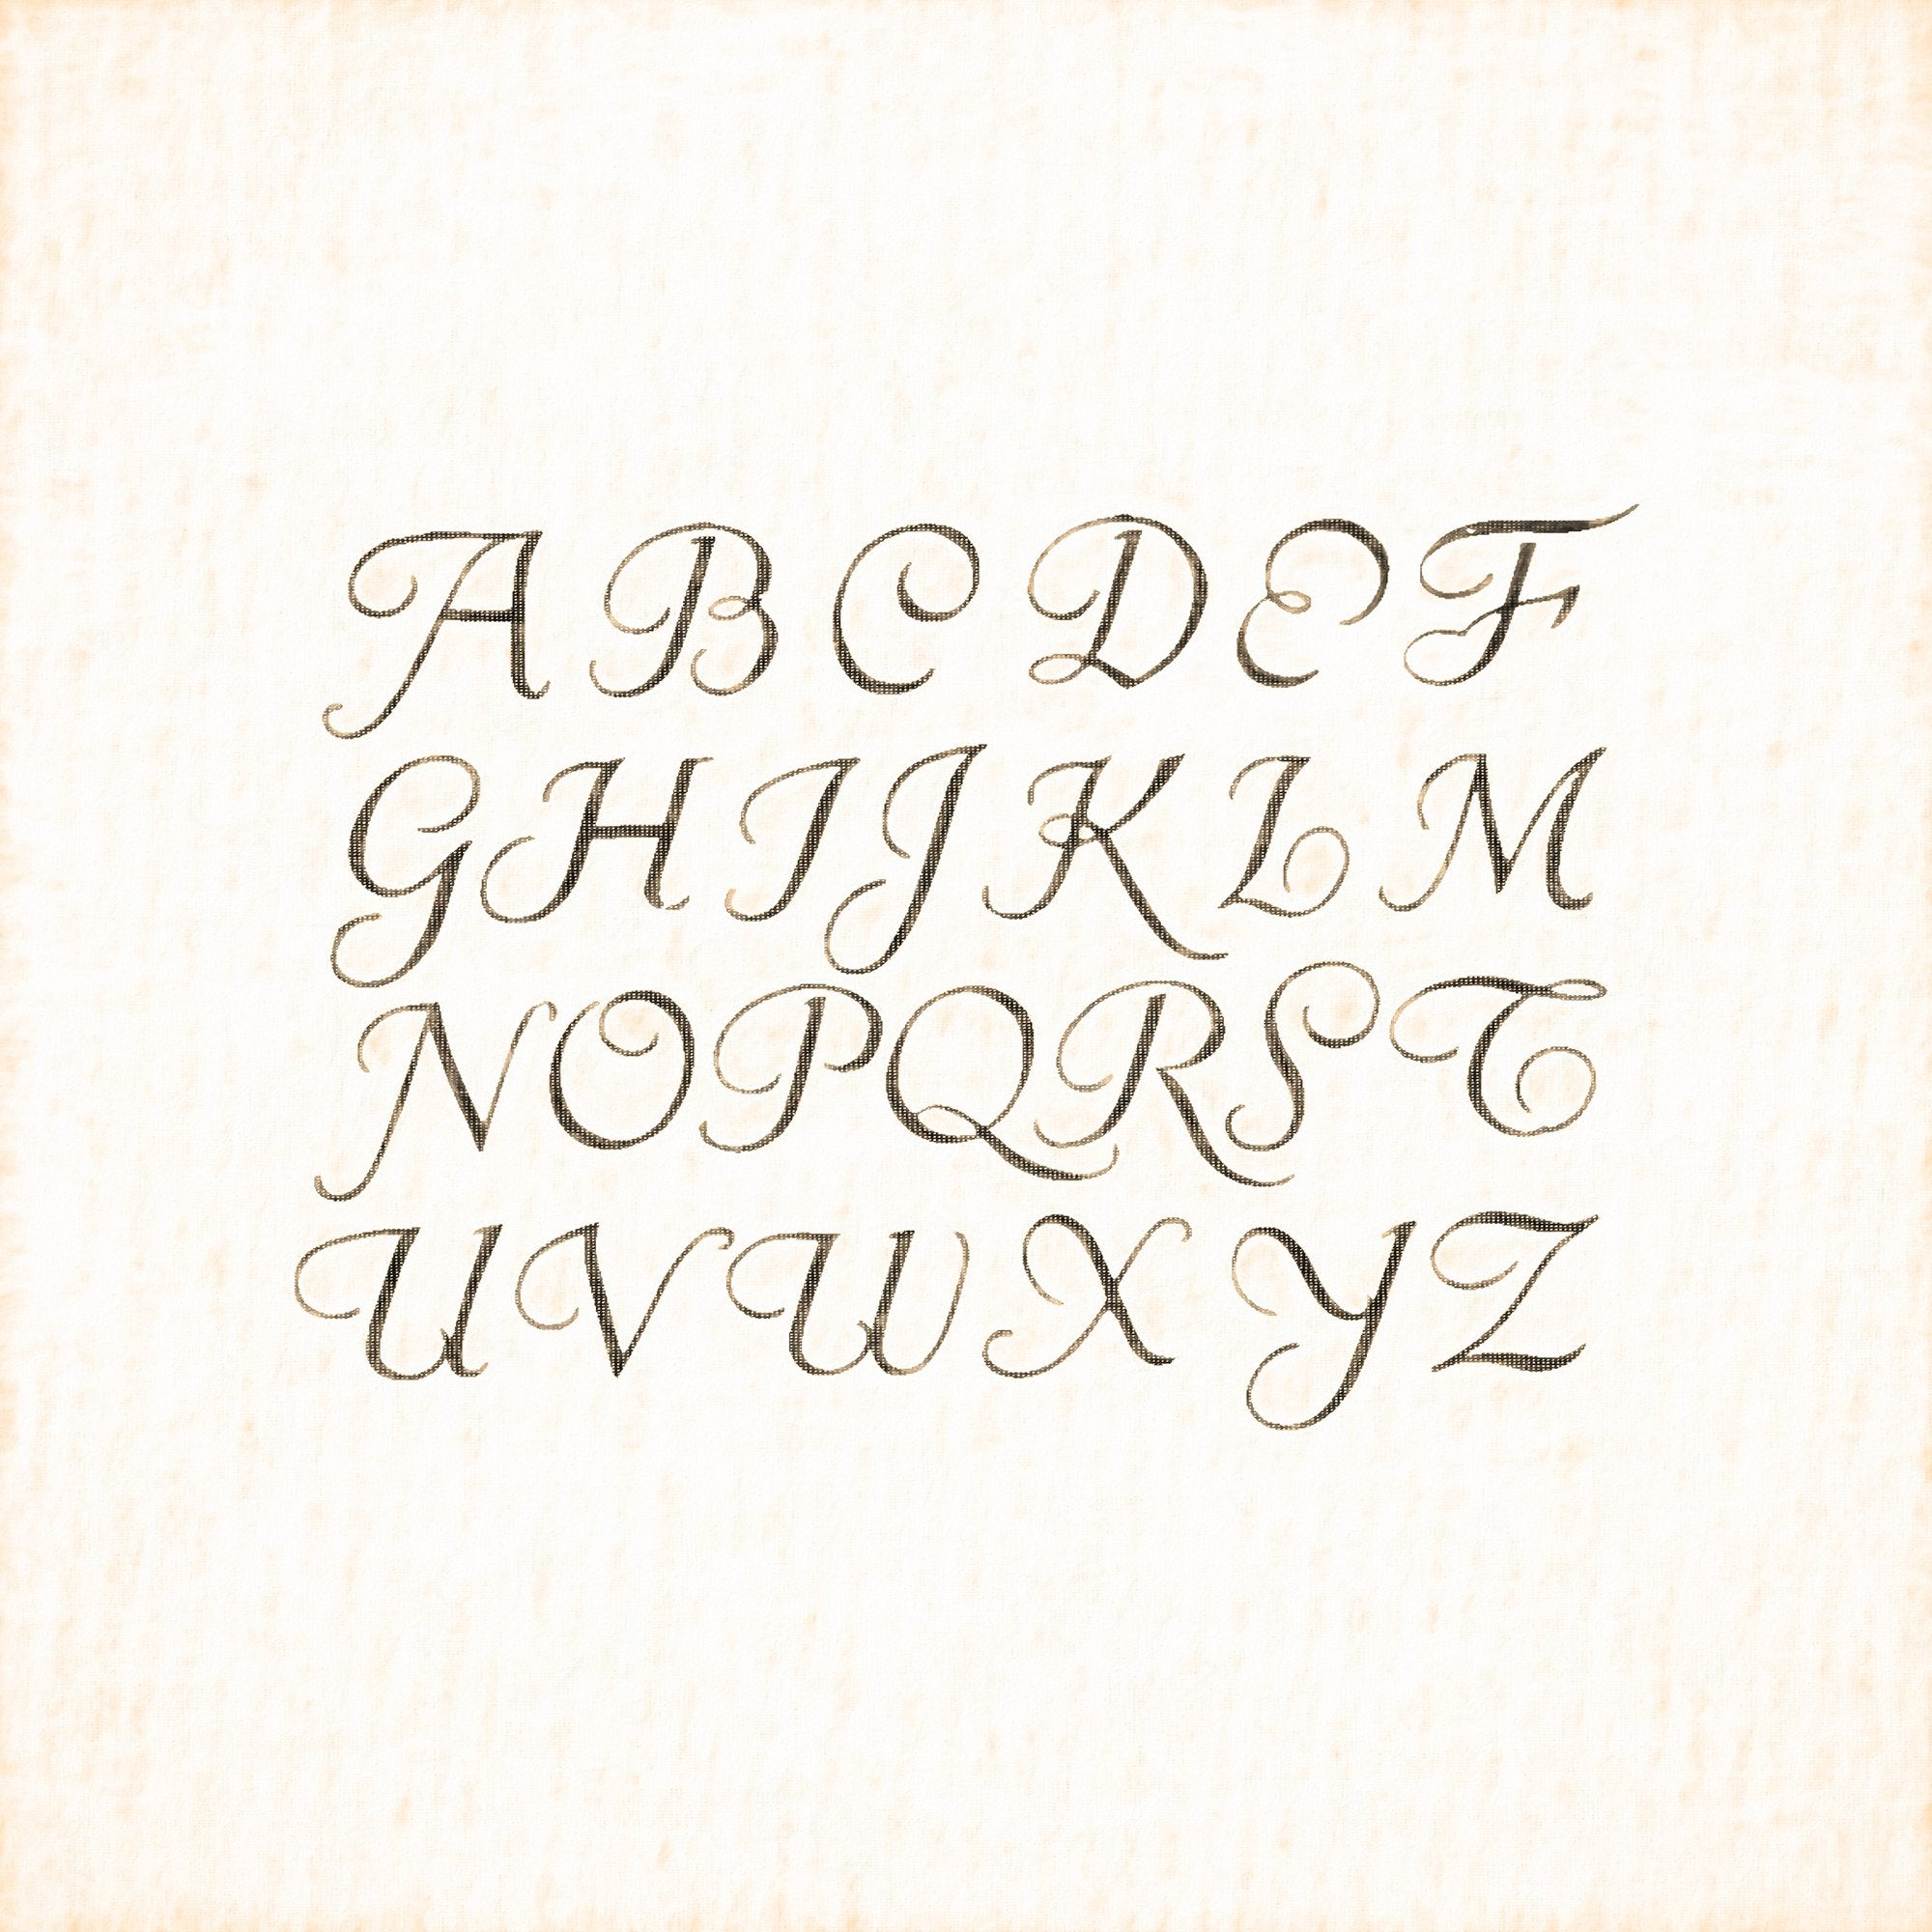 Alphabets Old and New, Illustration 133, Penwork, R. K. Cowtan, Reworked, Series 1